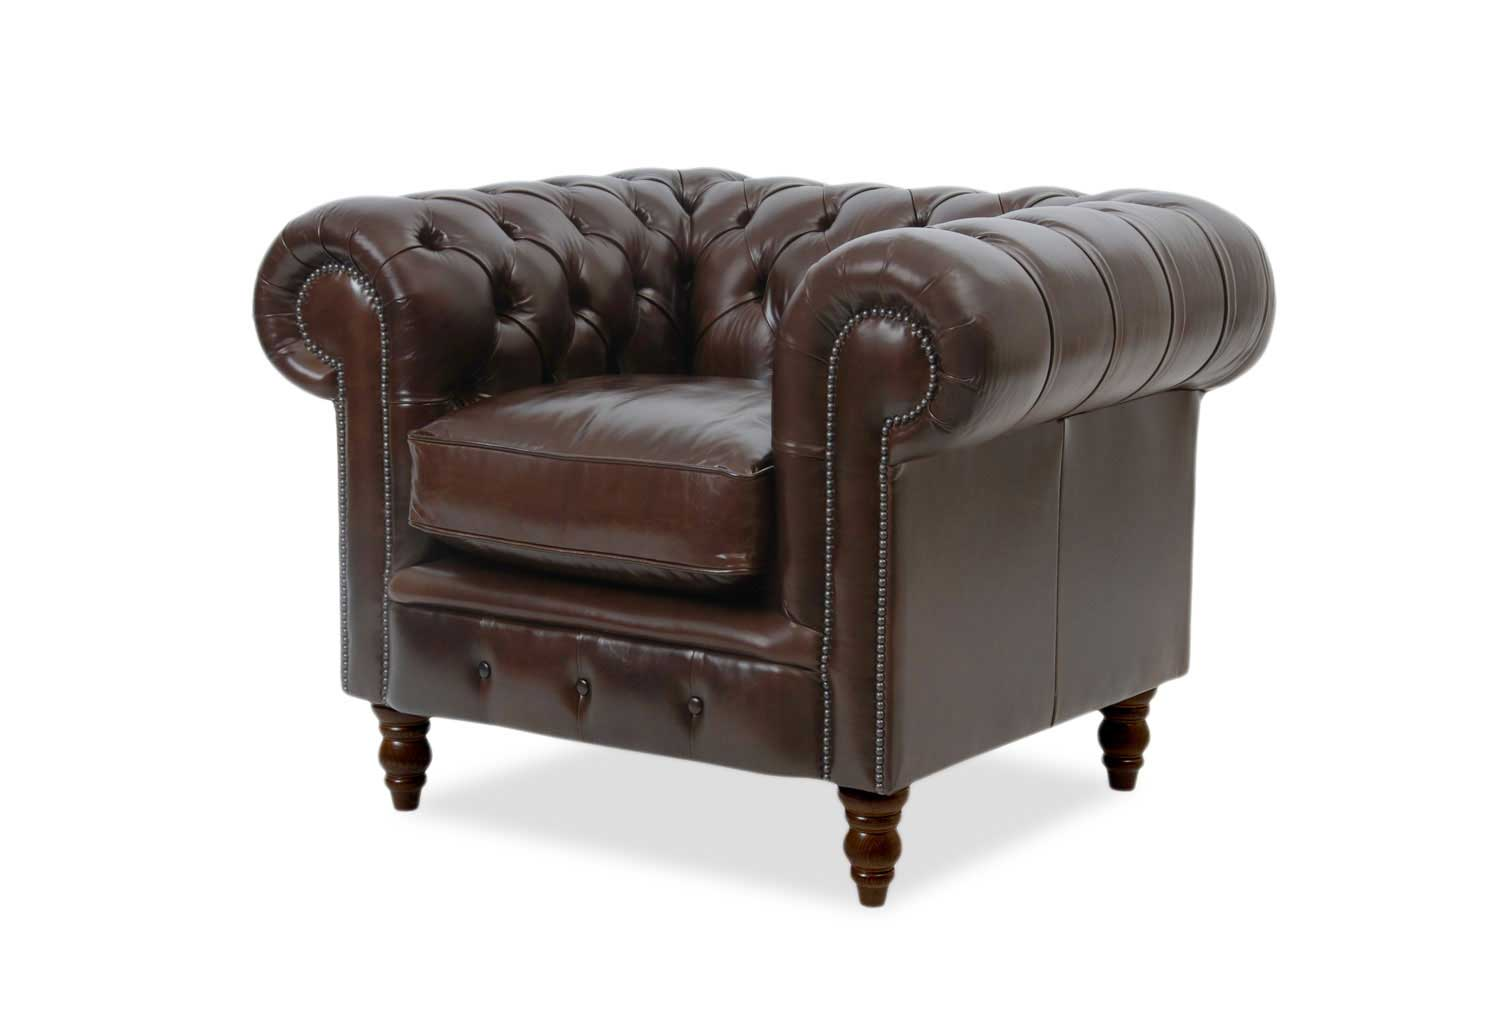 Sessel Chesterfield Chesterfield Garnitur Bennet Chesterfield Sessel